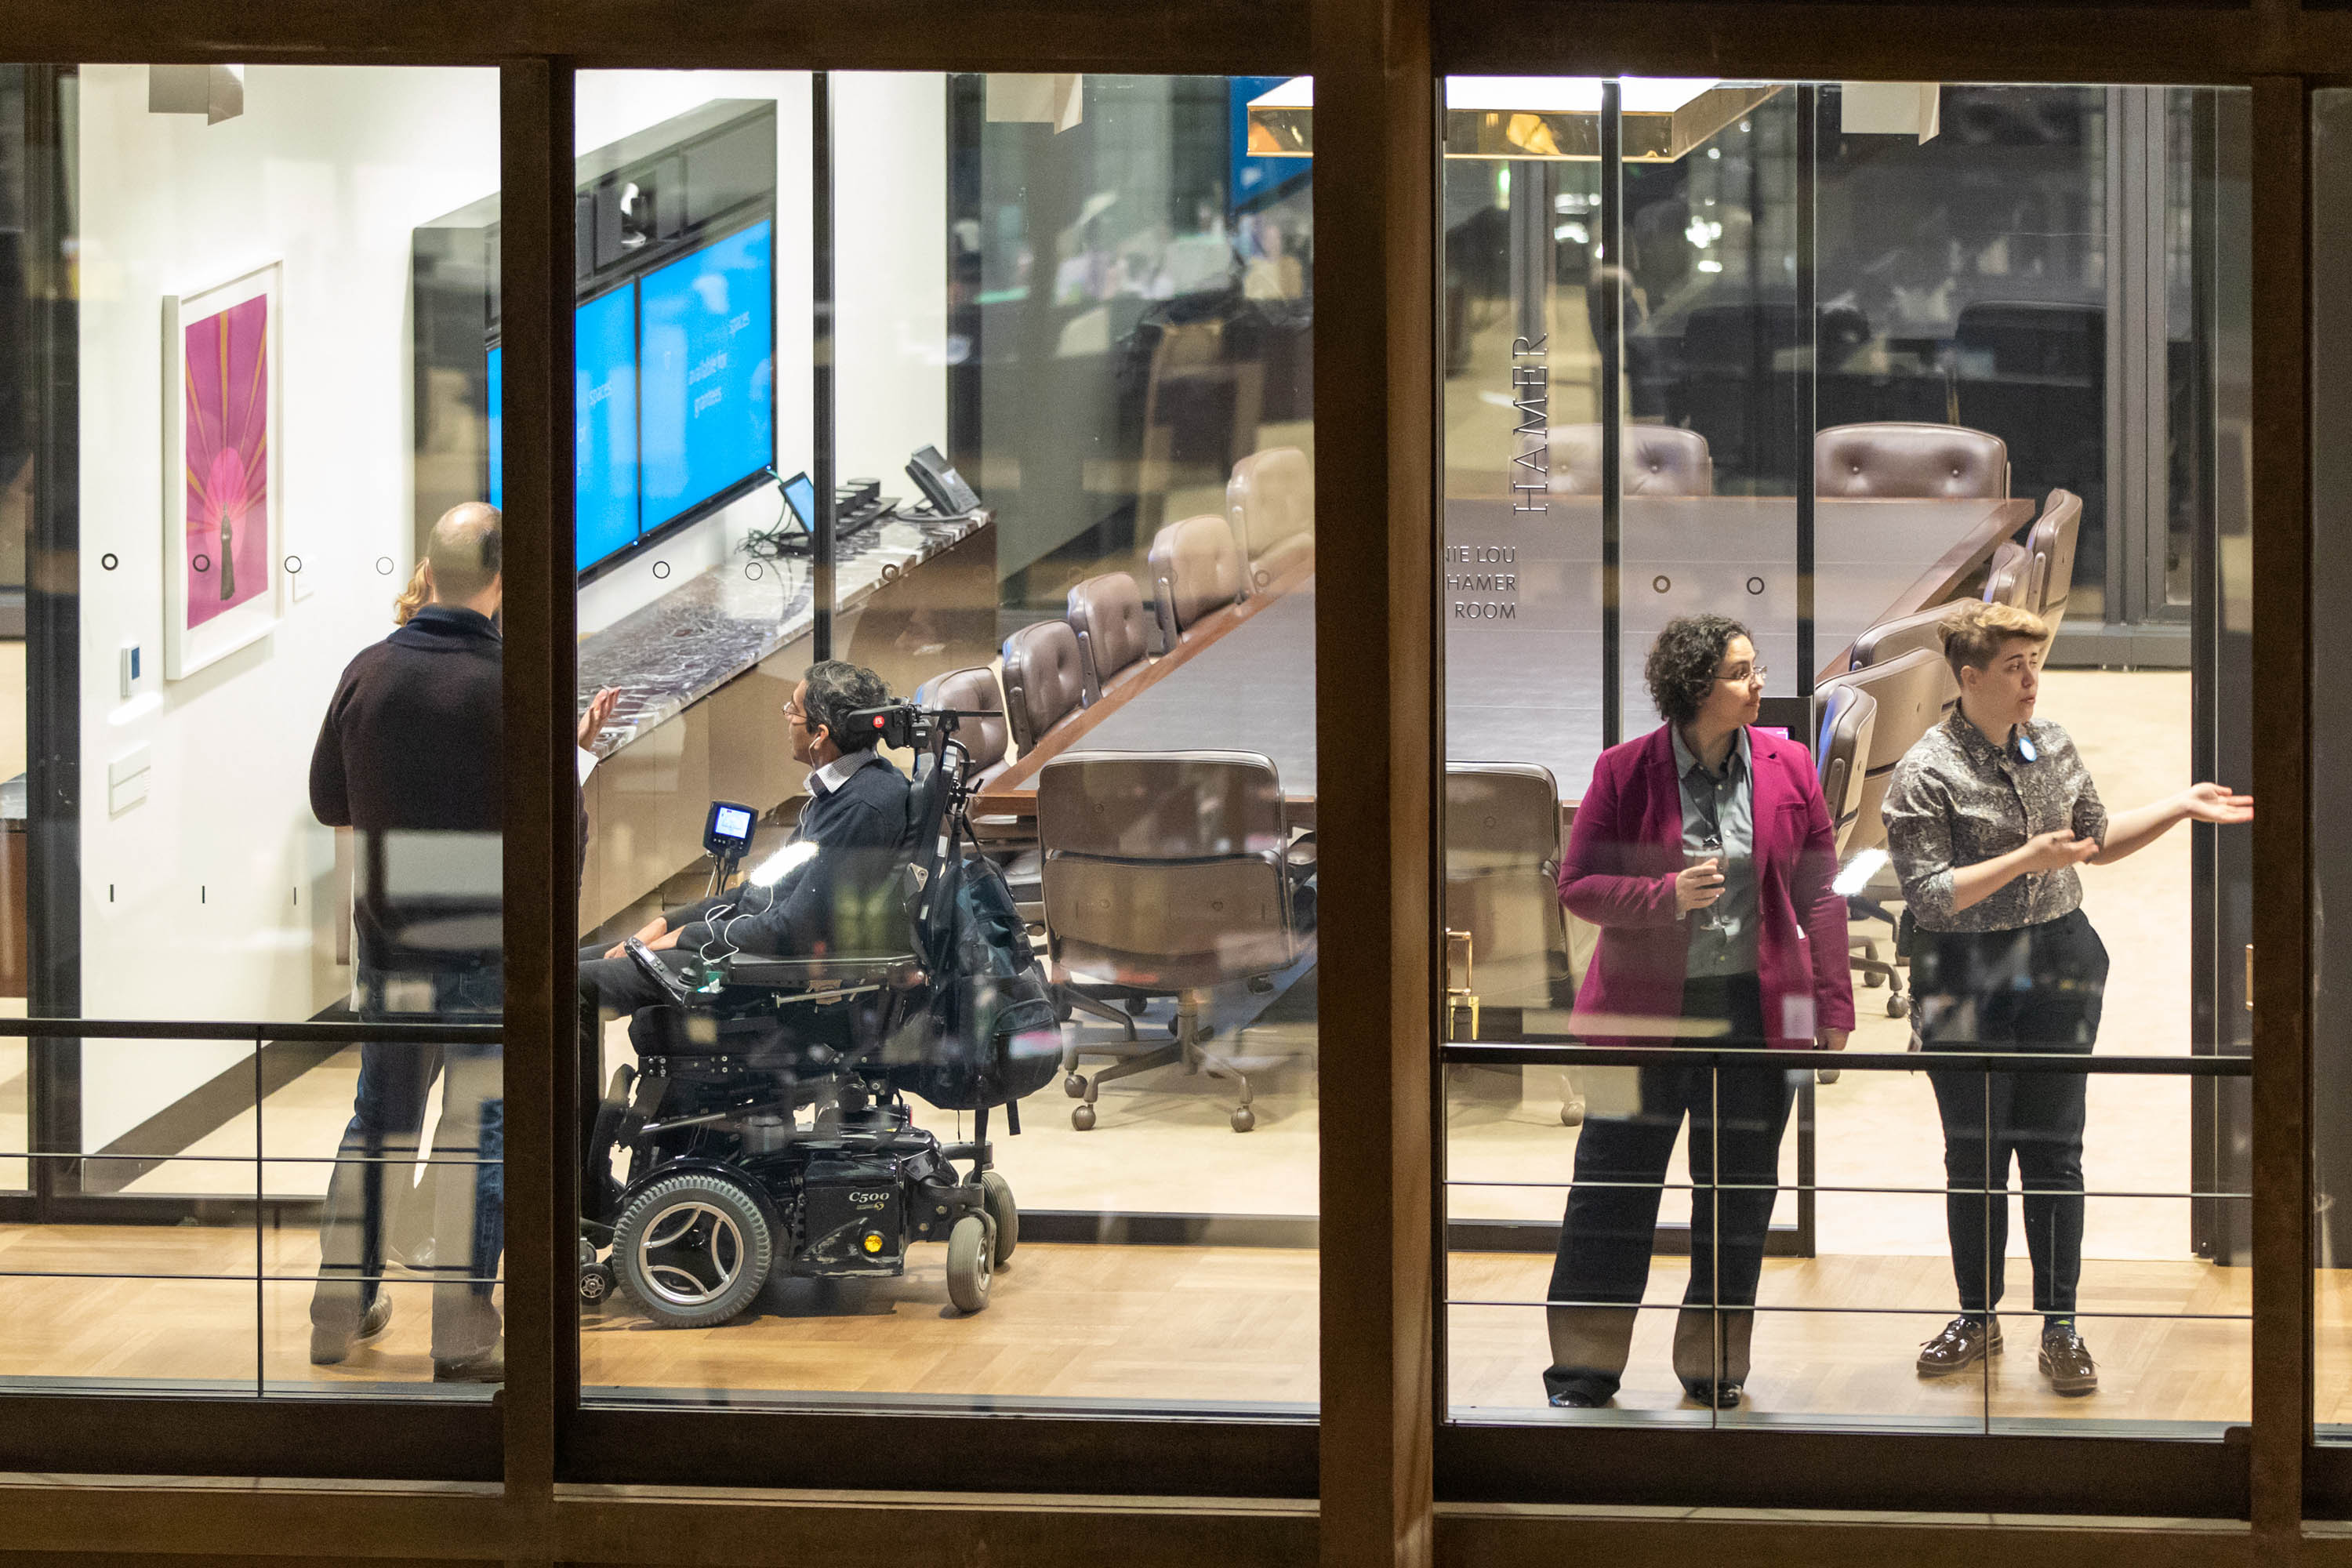 Ford staff giving visitors a tour of the glass and steel lined headquarters. On the left, a man in a power wheelchair talks with two standing people while two people stand on right looking down the hallway.